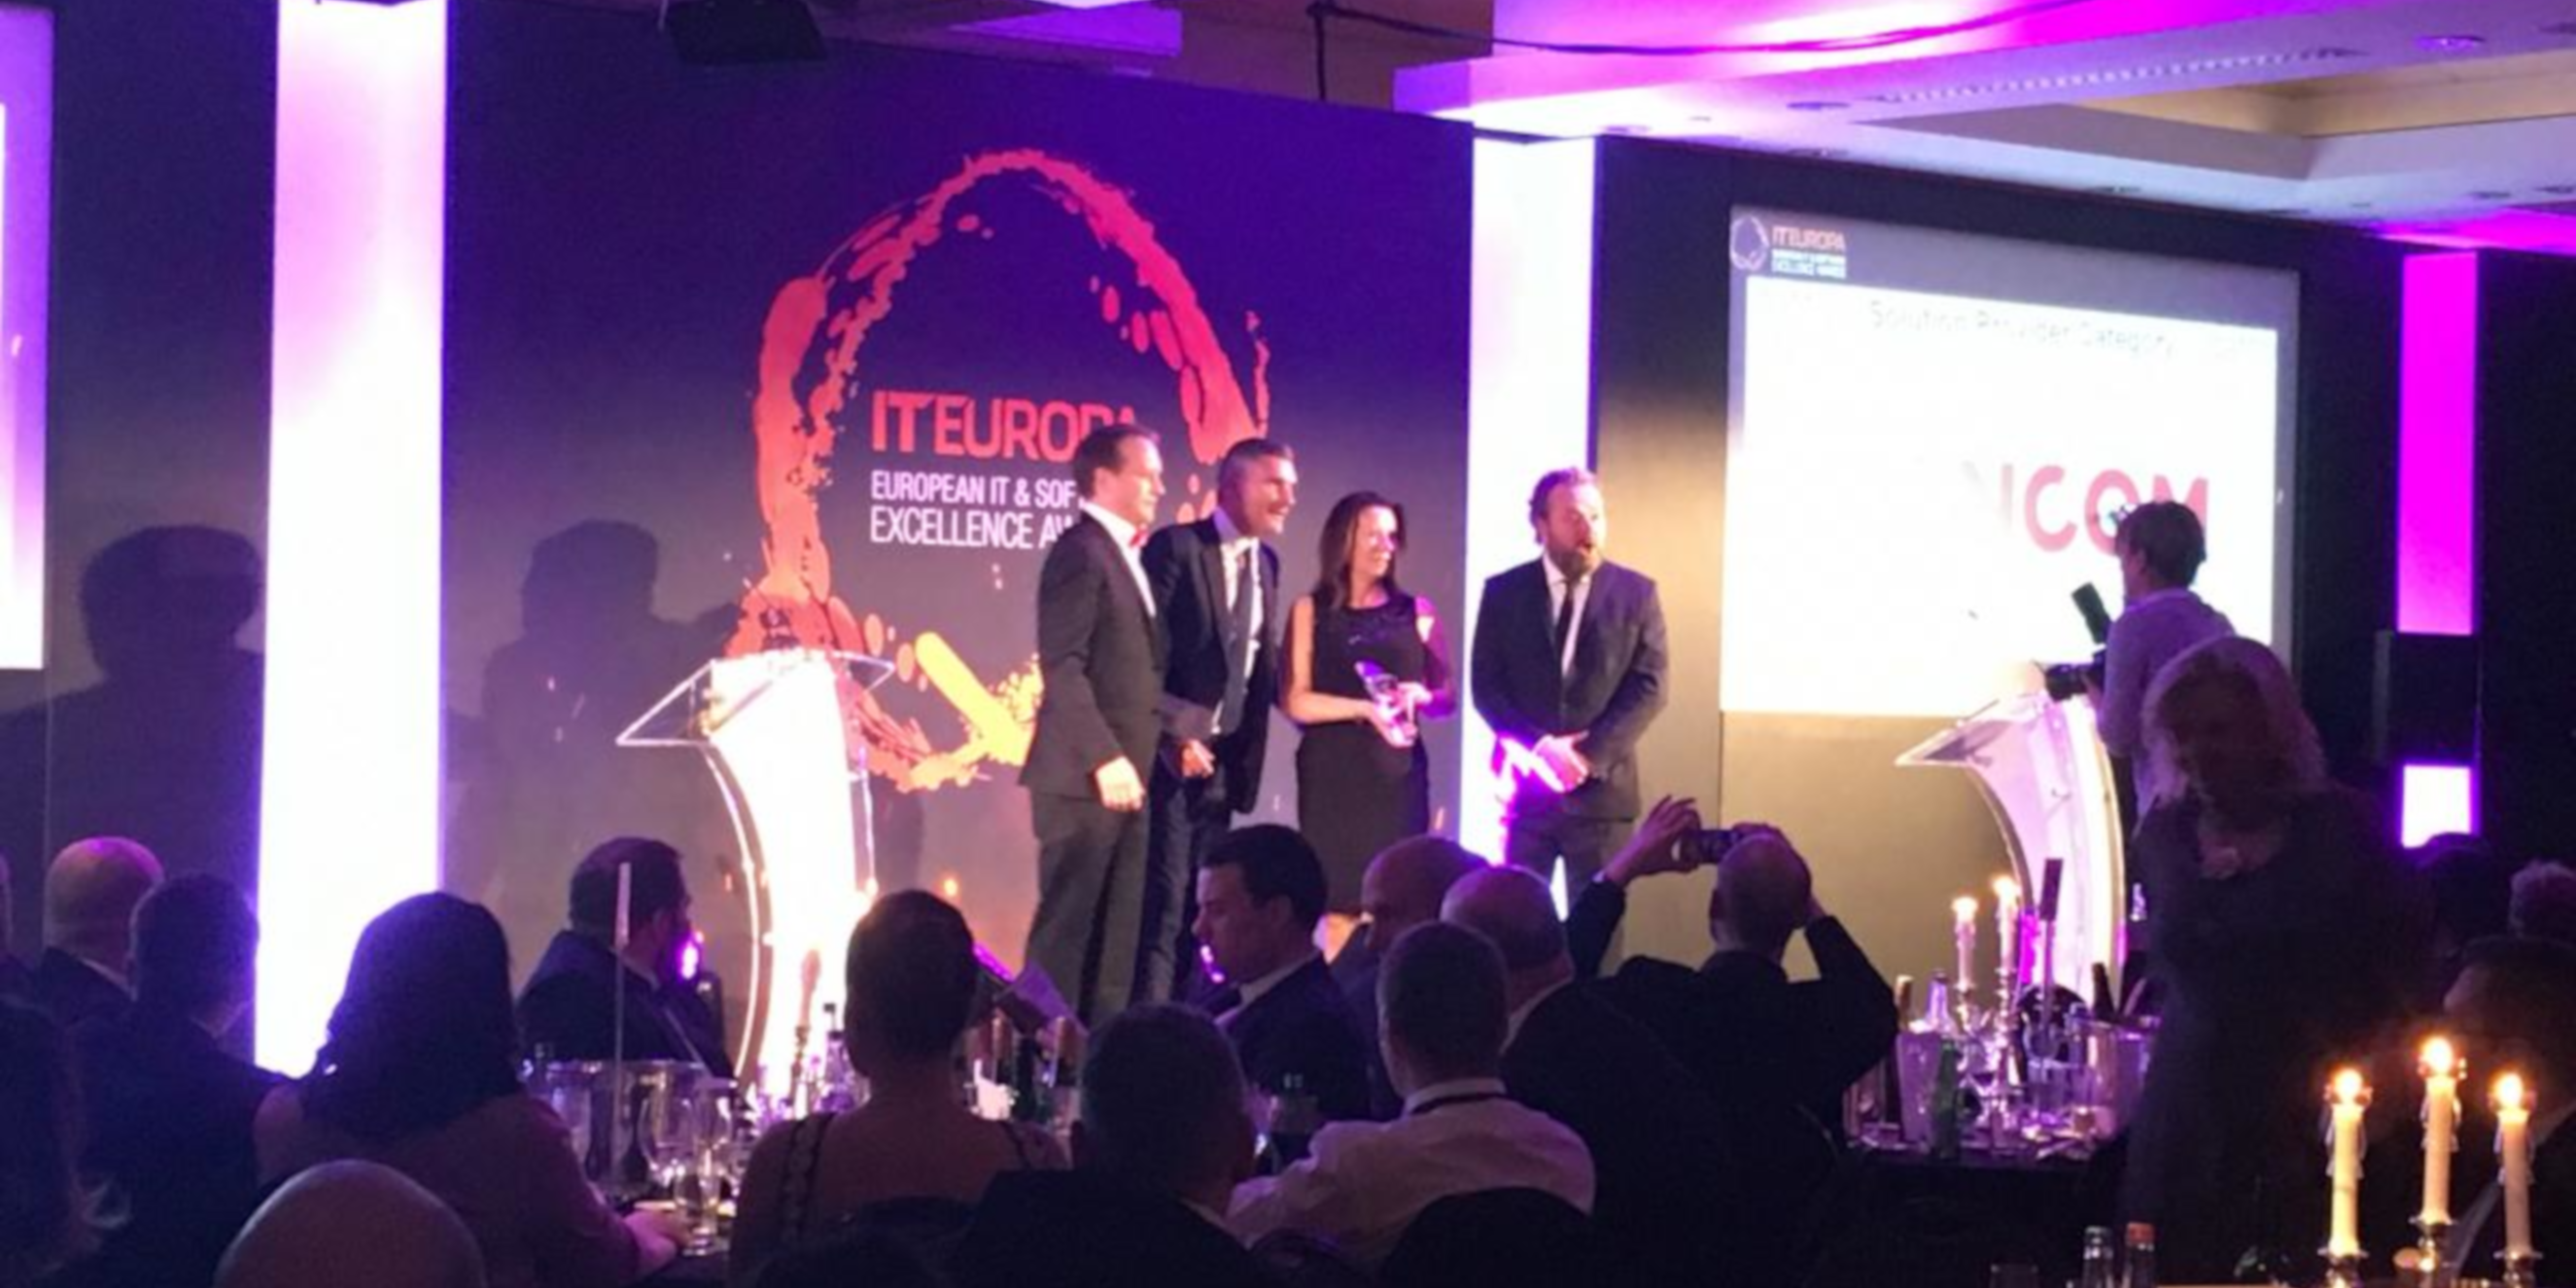 A Big Win at the European IT and Software Excellence Awards!